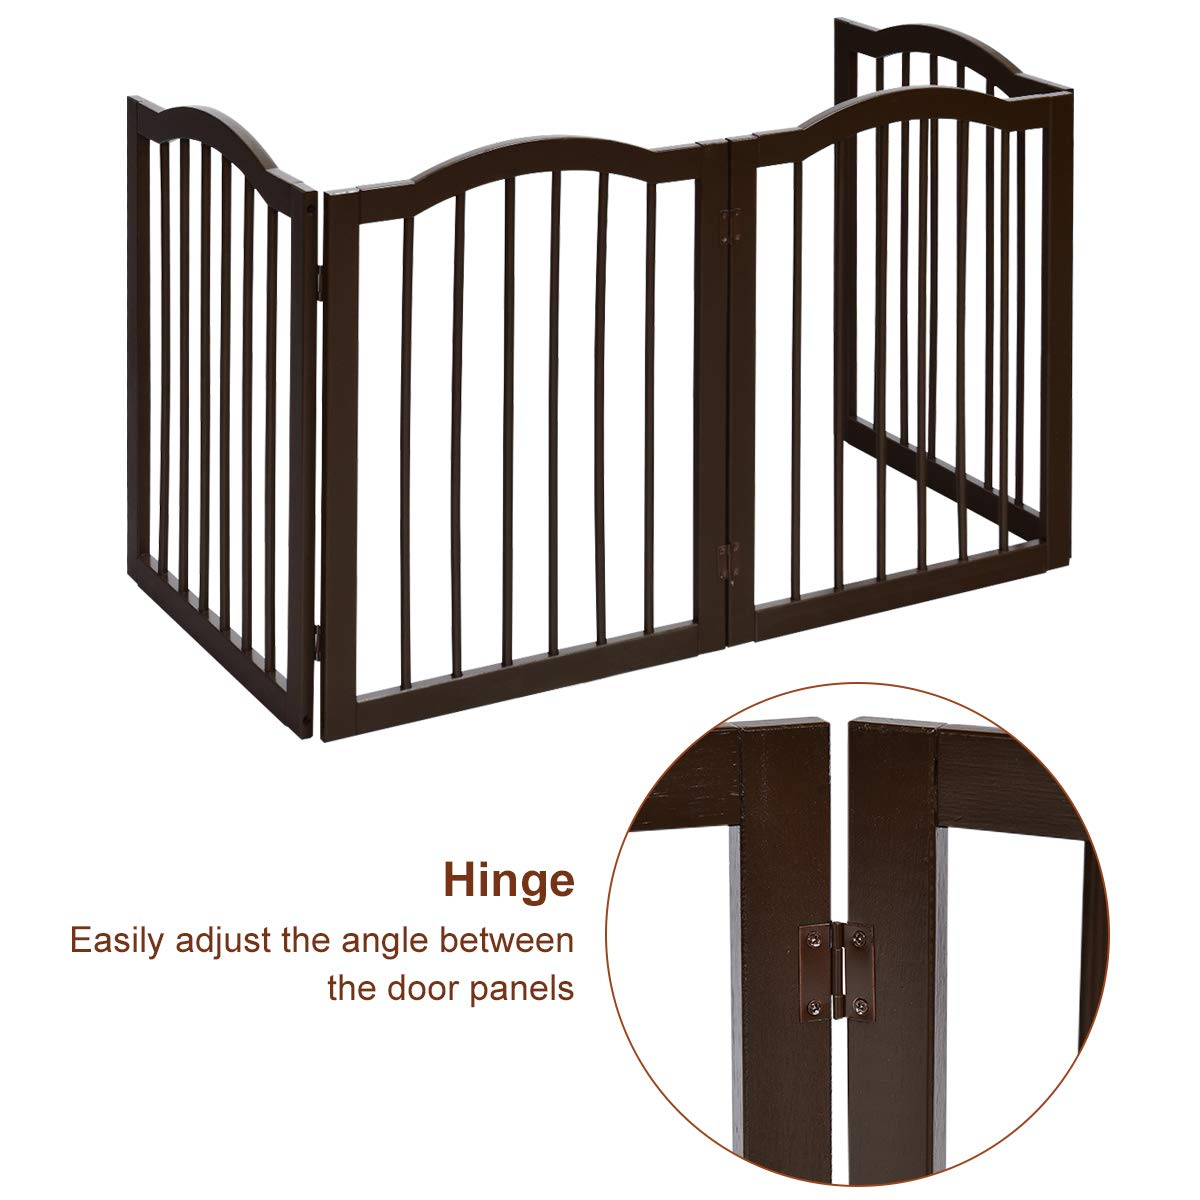 93cm High Pet Guard for Doorways GYMAX 3 Panels Freestanding Barrier 360/° Rotating Wooden Folding Pet Gate Stairs